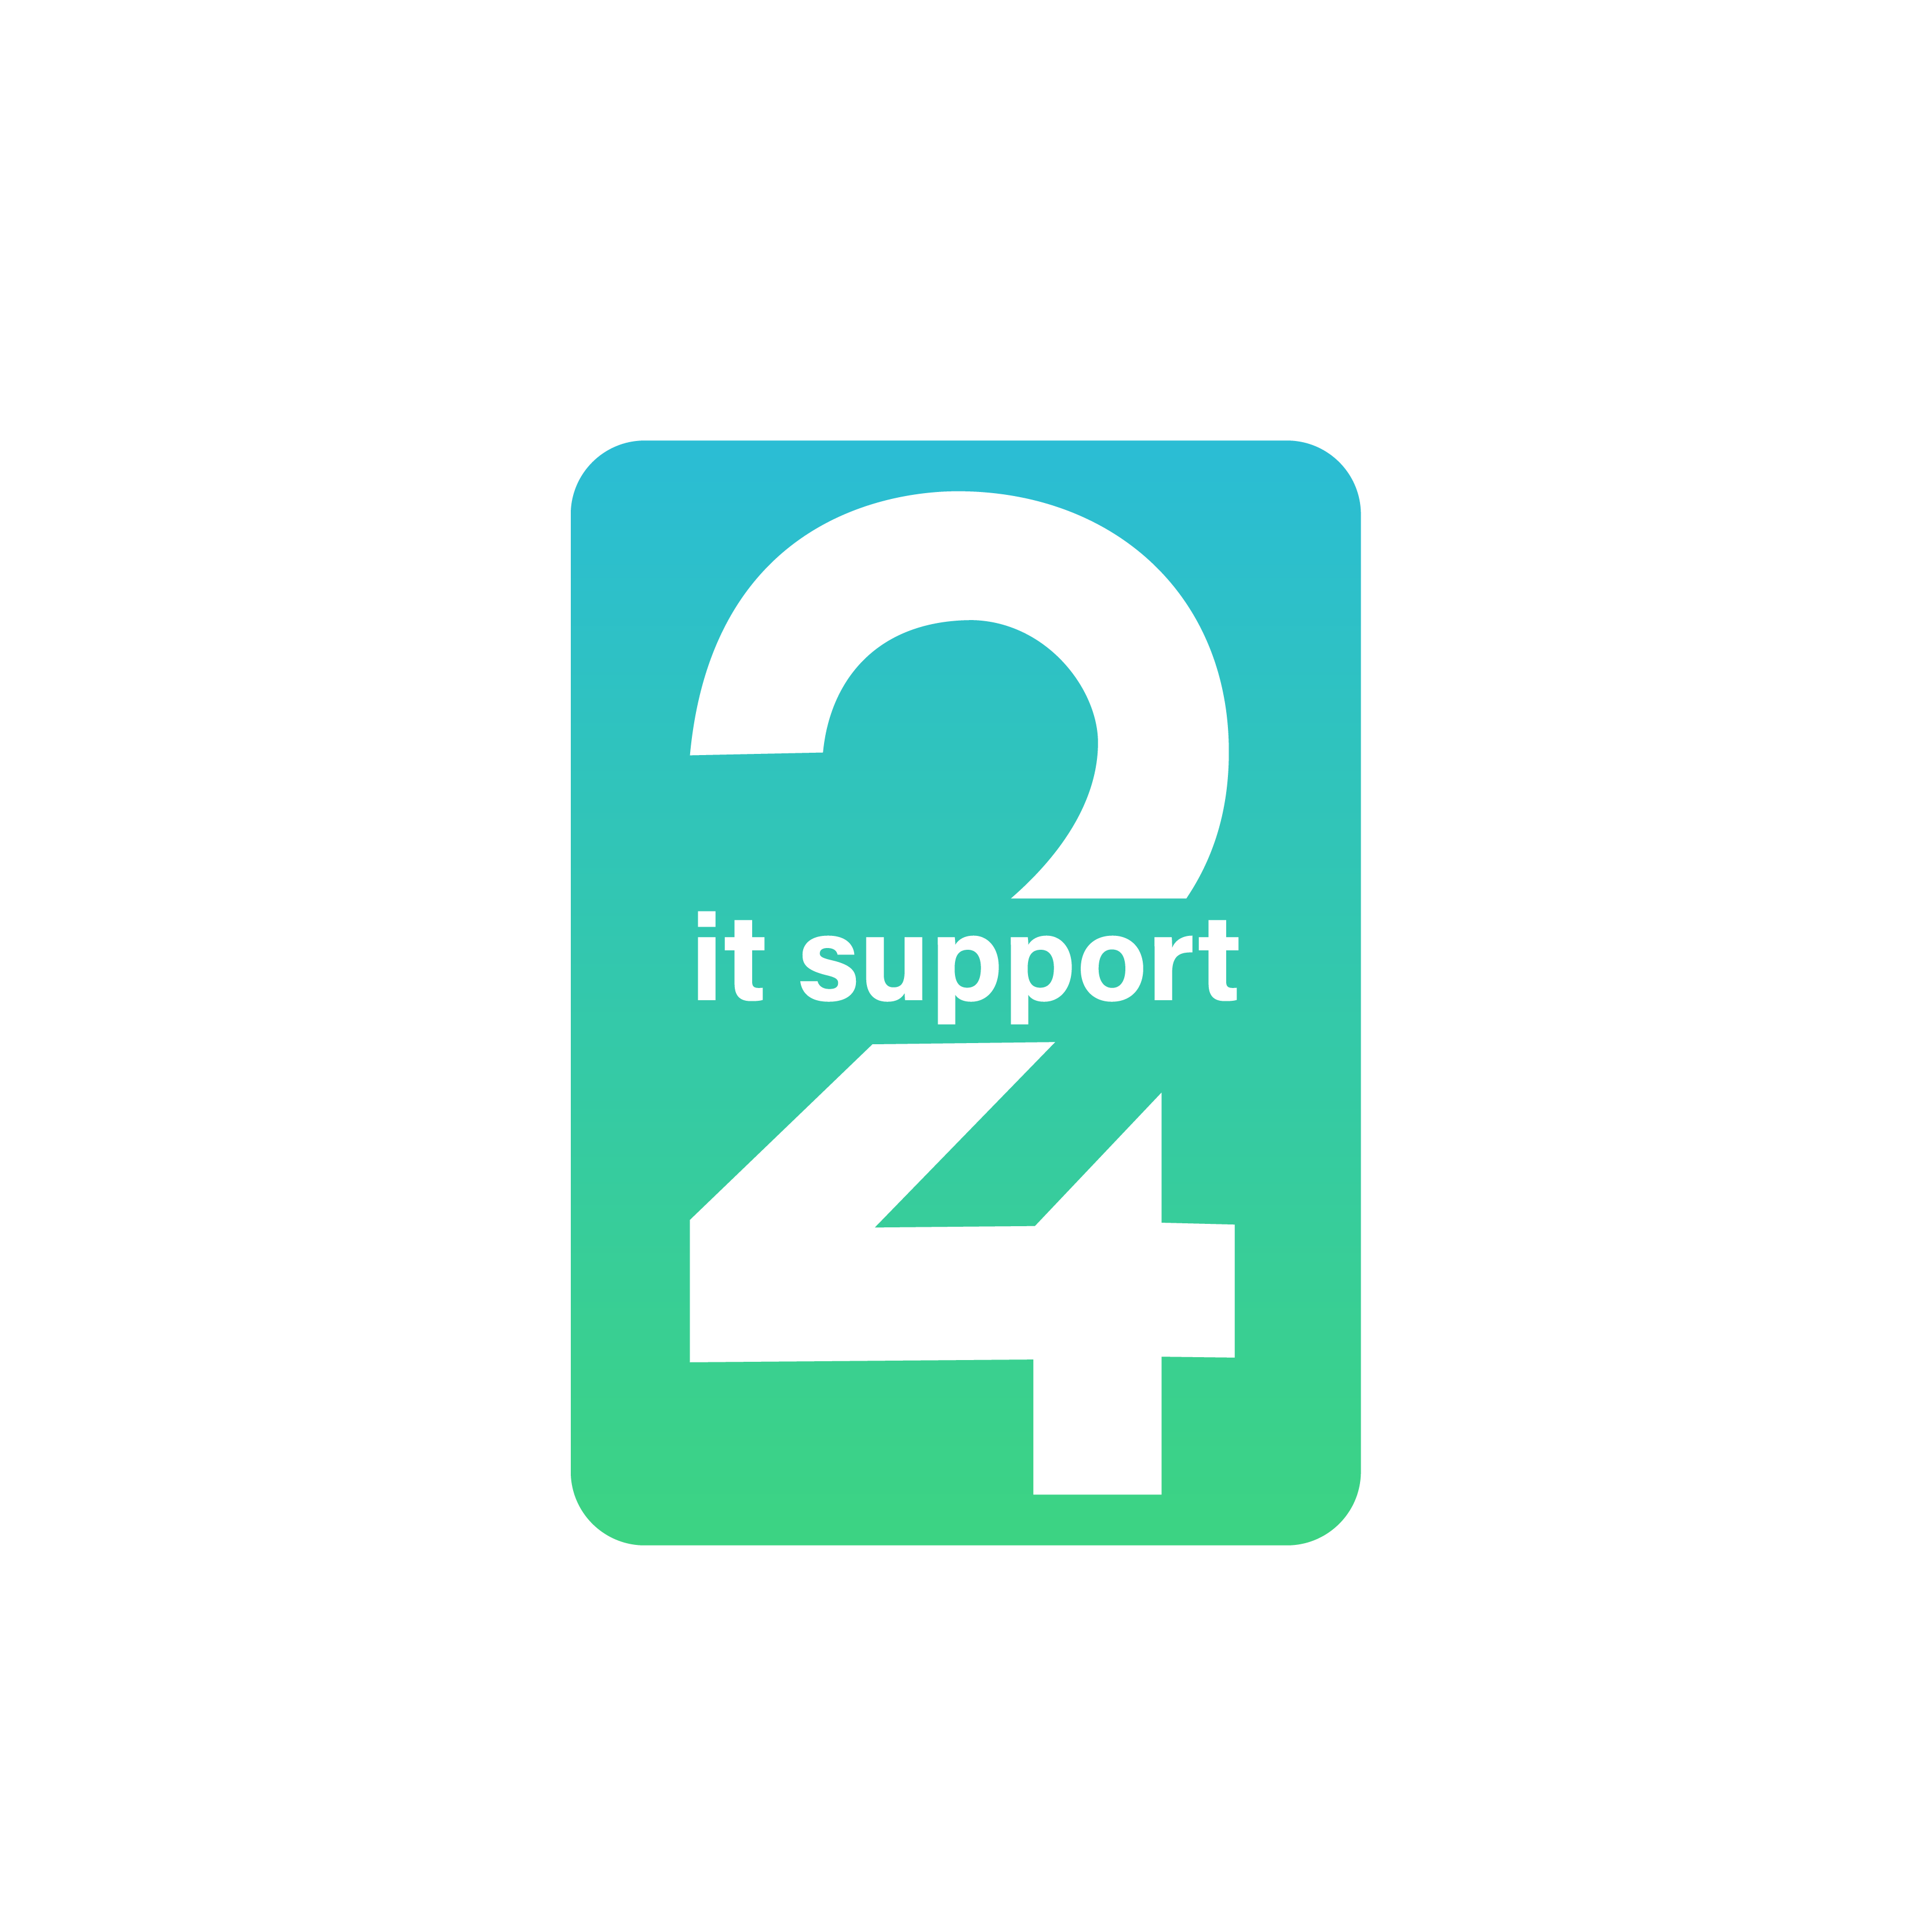 Cloud Support Services UK | Business VoIP Providers UK - IT Support 24